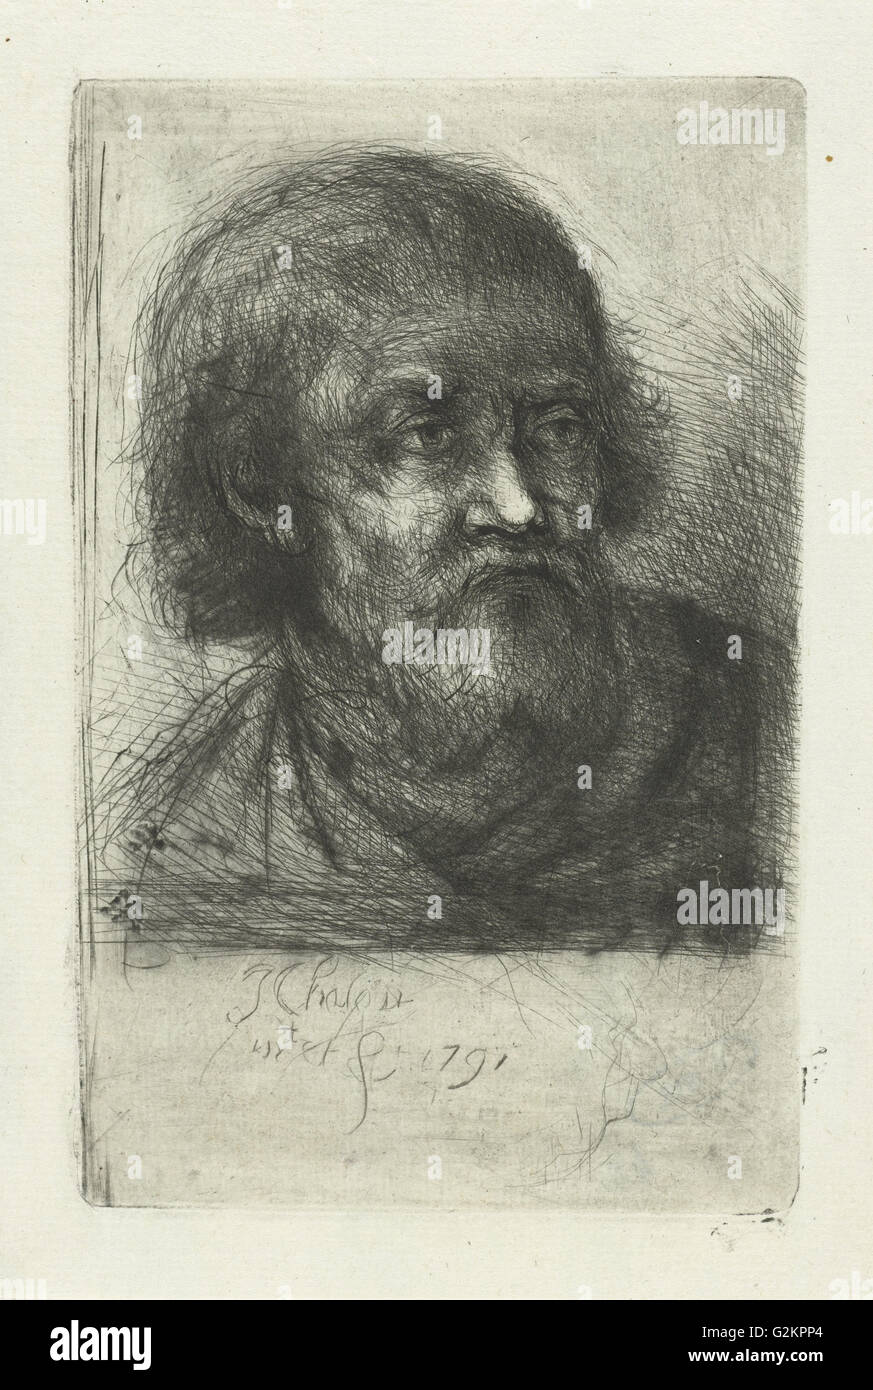 Old man, Jan Chalon, 1791 - Stock Image